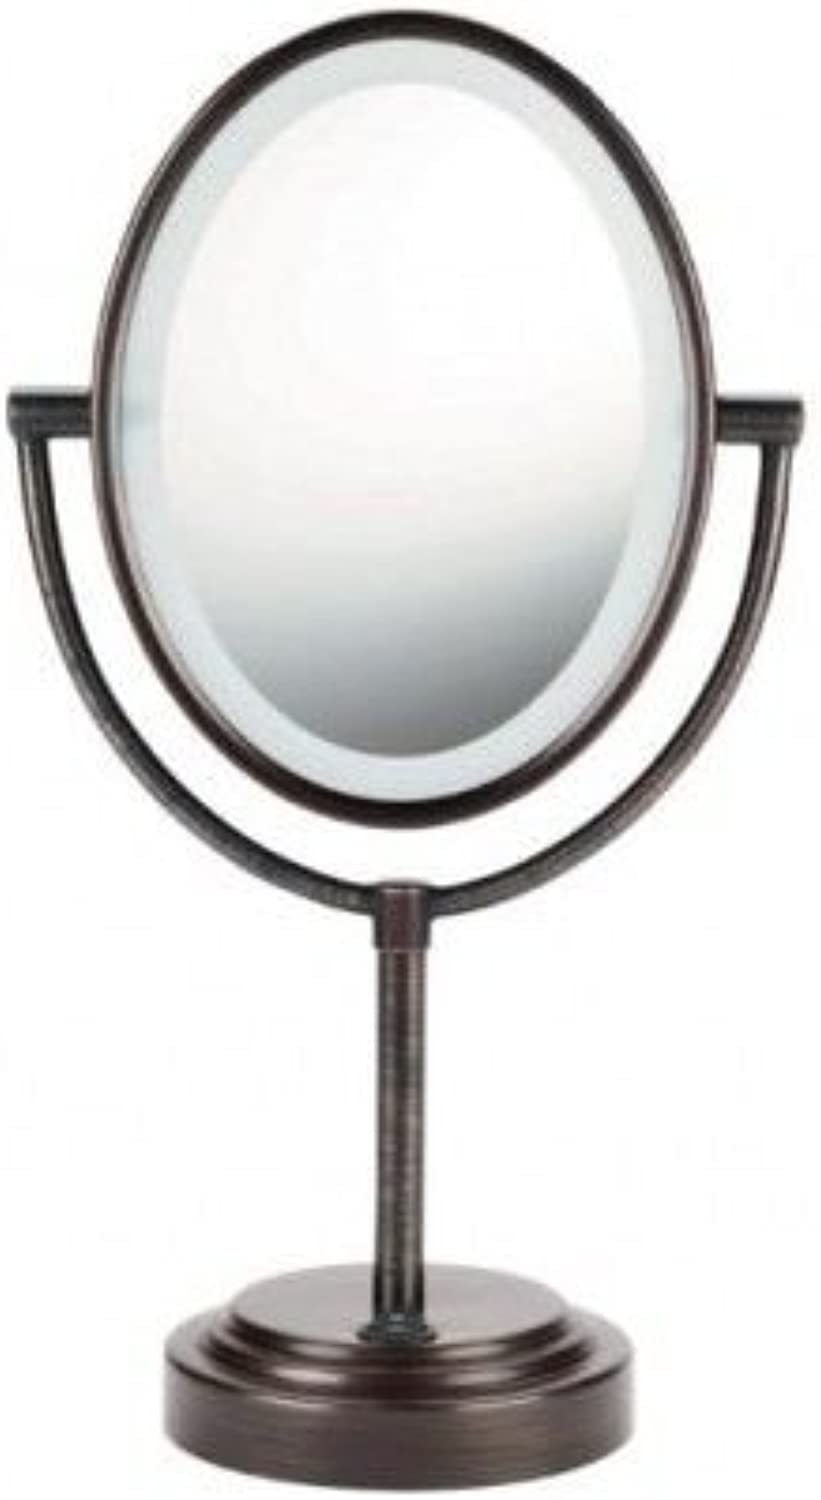 Makeup Mirror,Lighted Double Sided Magnifying Stand Vanity Bathroom Compact